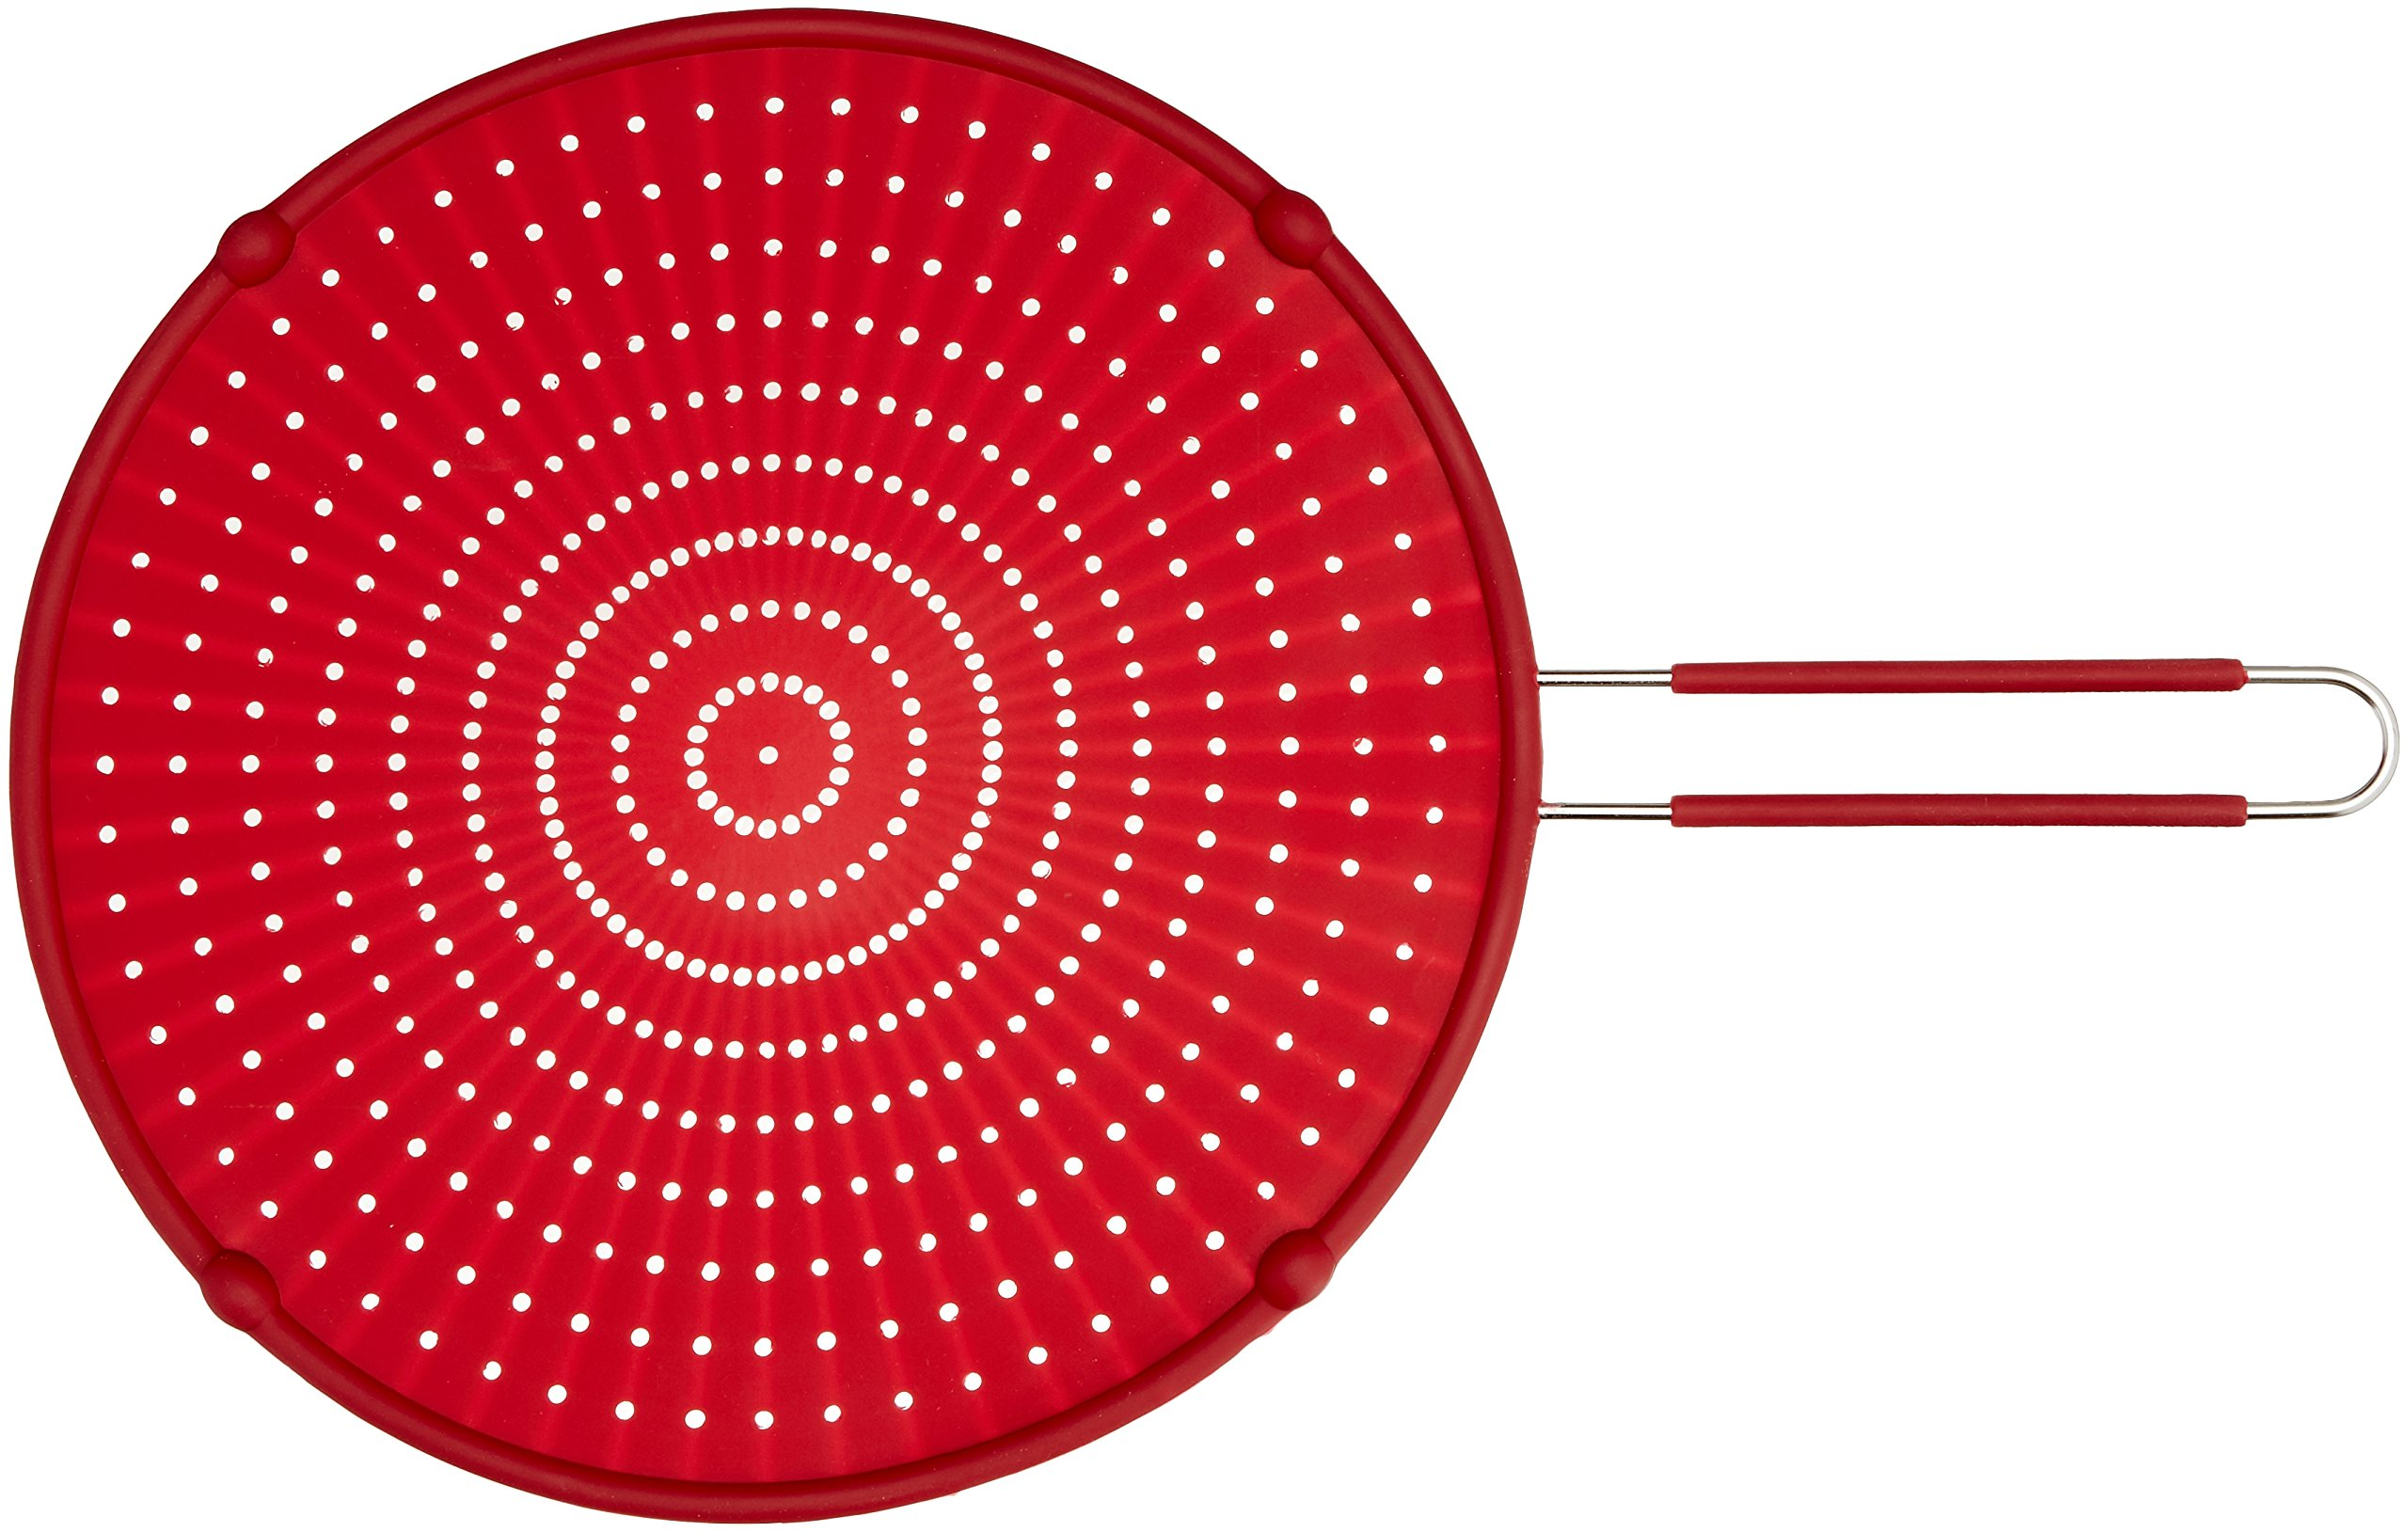 ExcelSteel Silicone Splatter Screen with Non-Slip Grip, Red, 13'' by ExcelSteel